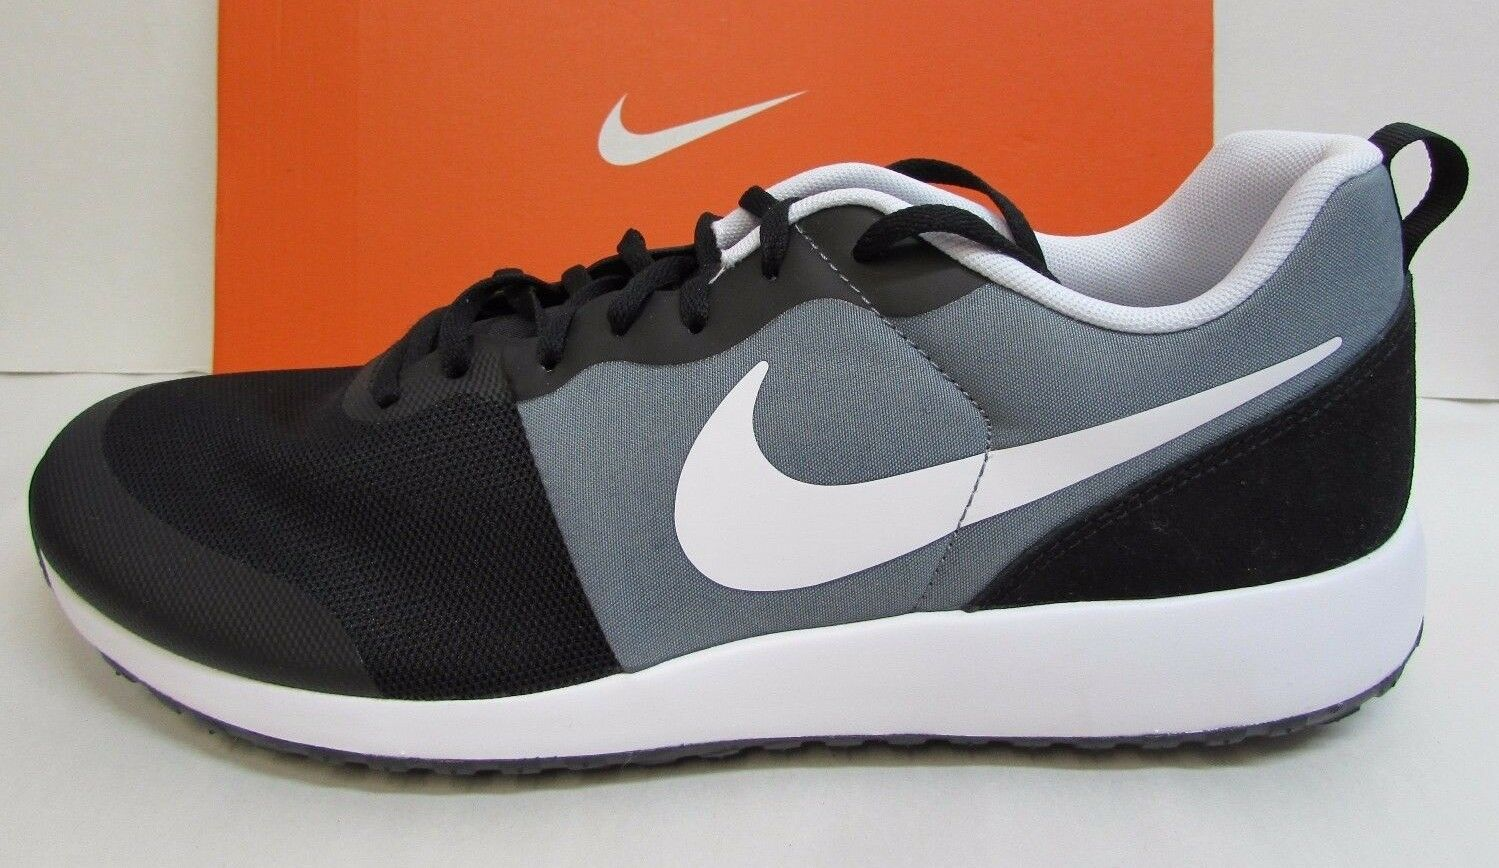 Nike Size 13 Black Gray Running Sneakers New Mens Shoes